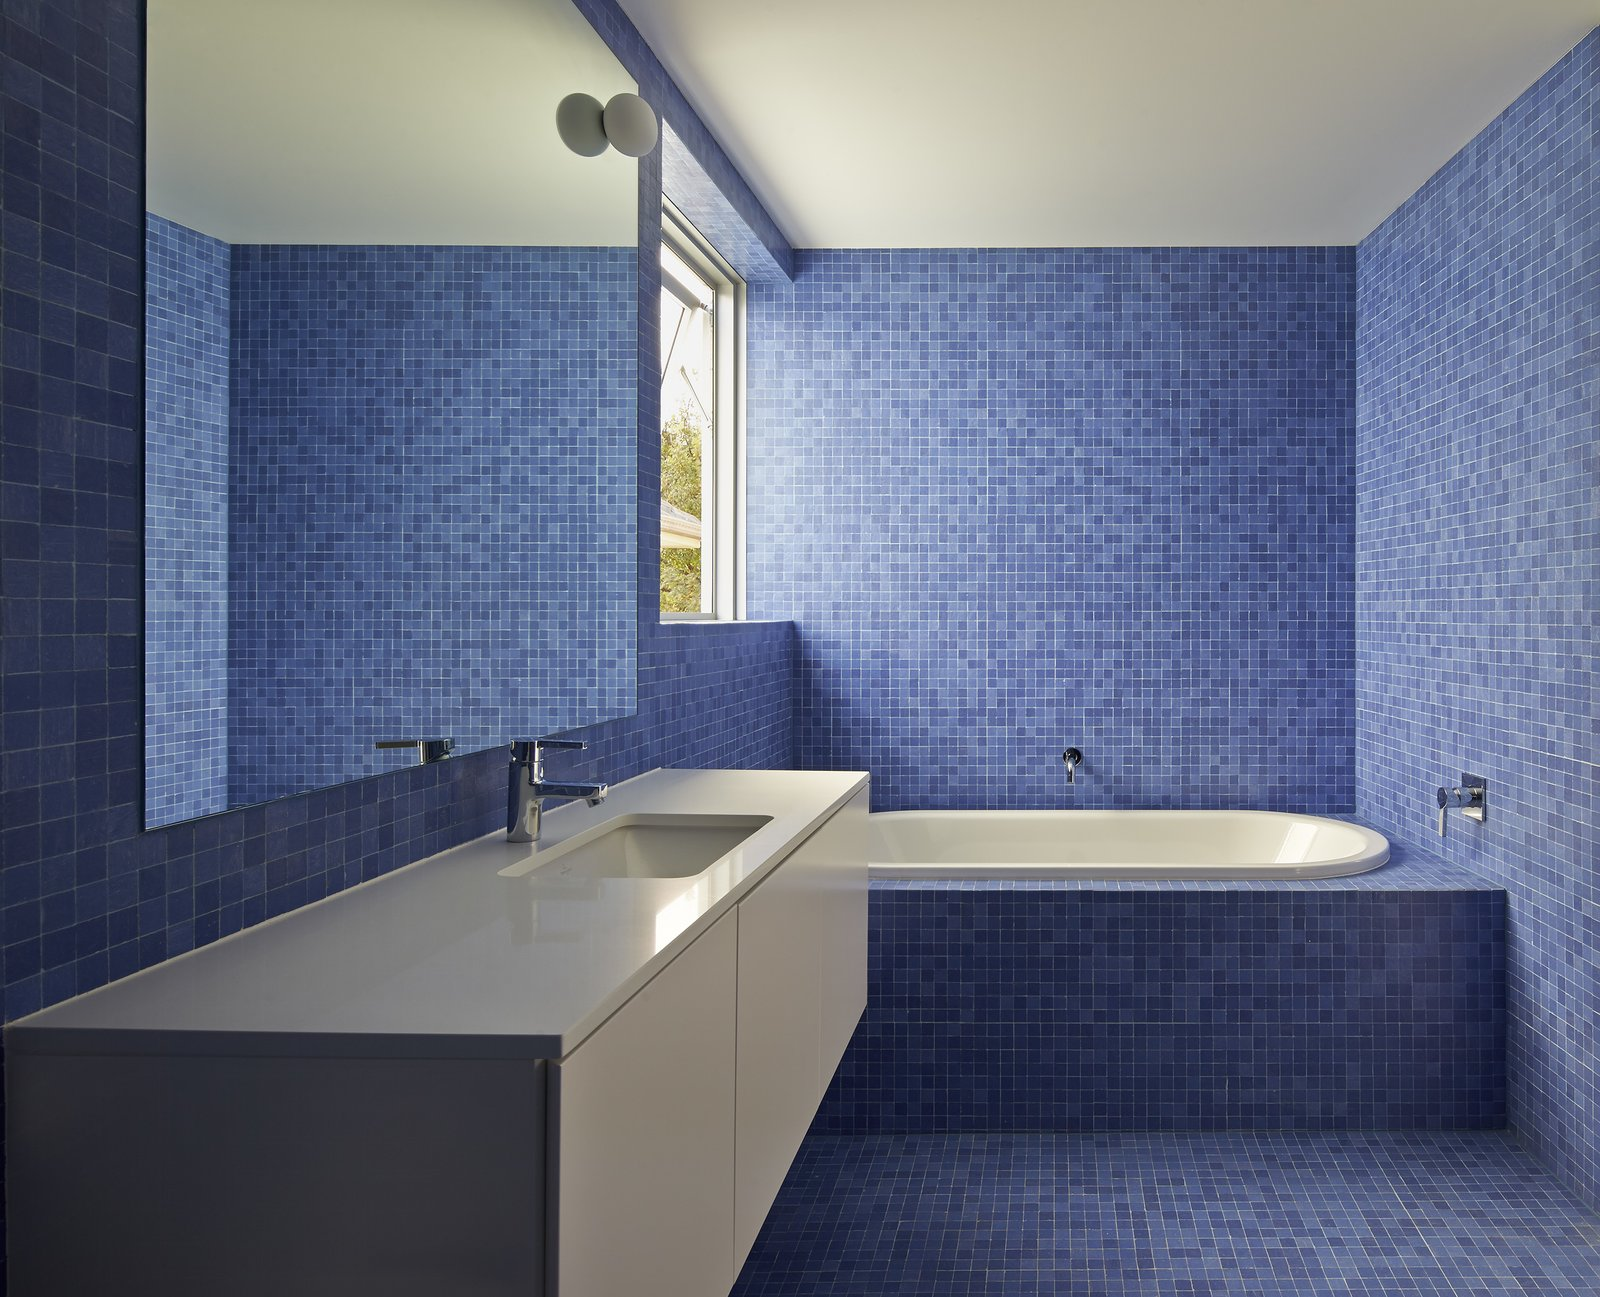 The bathrooms are tiled in bright blue mosaic to offset the home's limited materials and color palette. The sinks, toilets, and tubs are by Villeroy & Boch, while the faucets and towel rails are by Grohe and Avenir, respectively.  Photo 1 of 13 in 12 Creative Ways to Use Tile in Your Home from Riverview